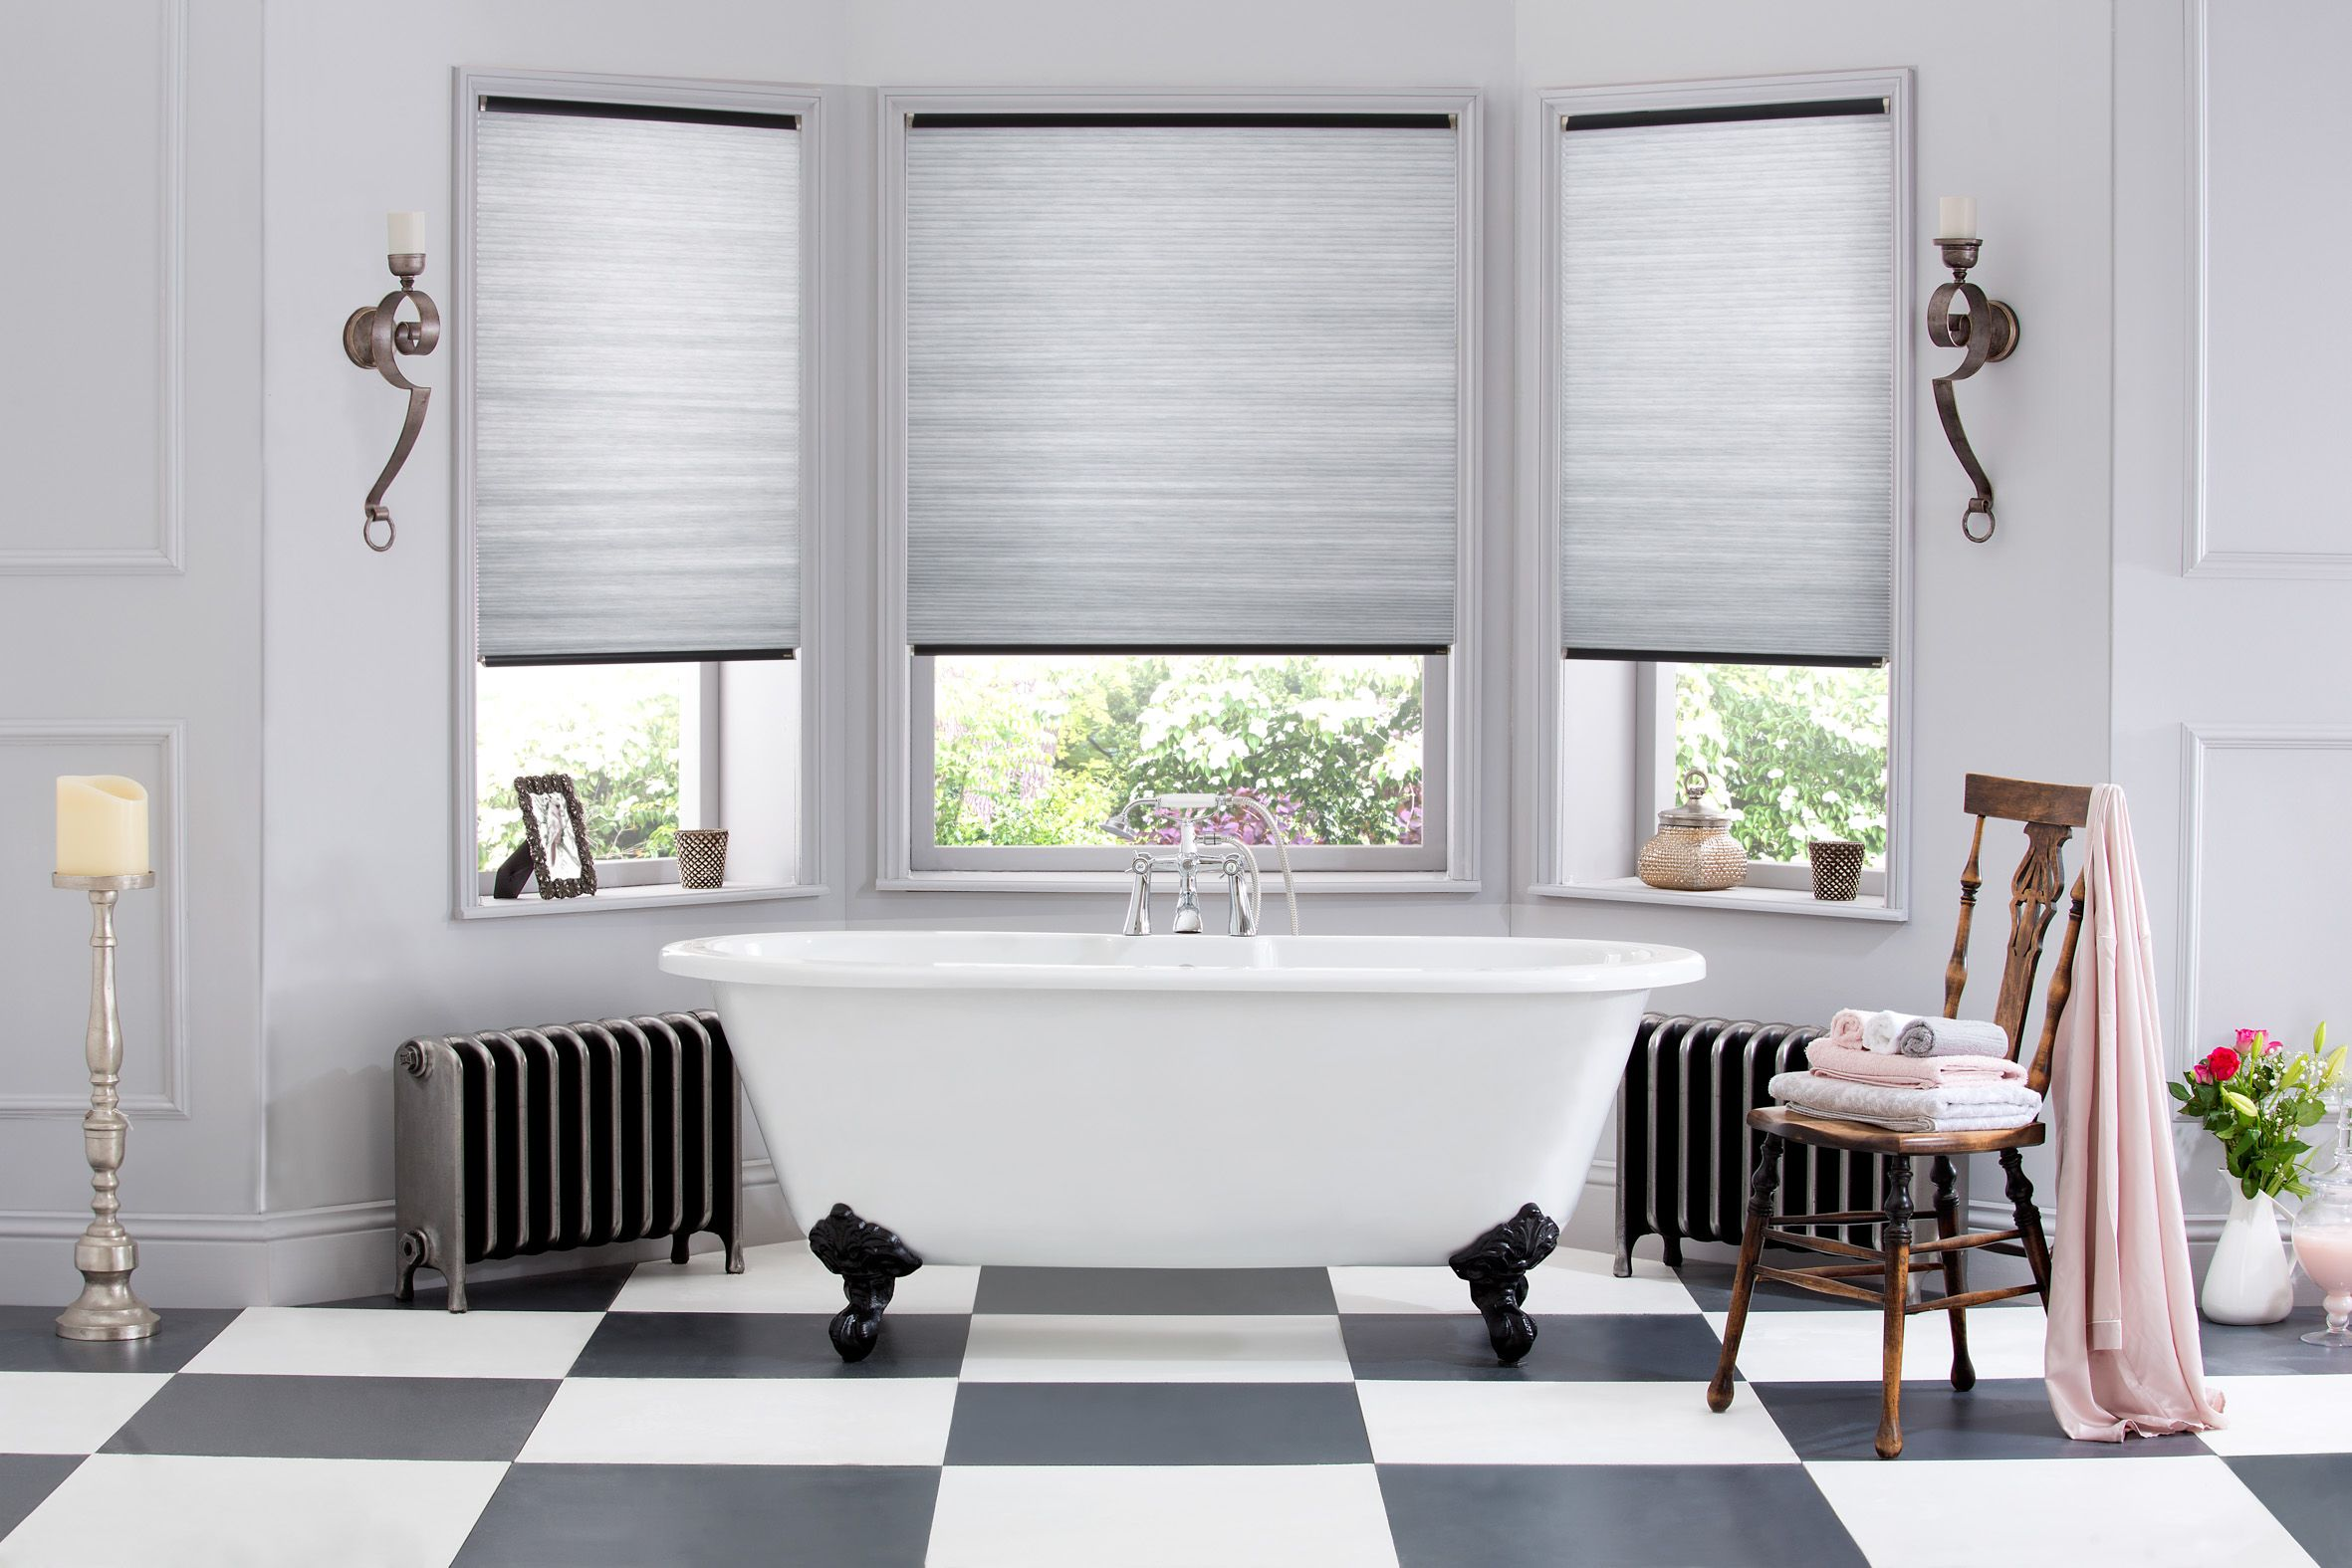 Hive Silkweave Raven Bathroom Blinds From Style Studio Hive